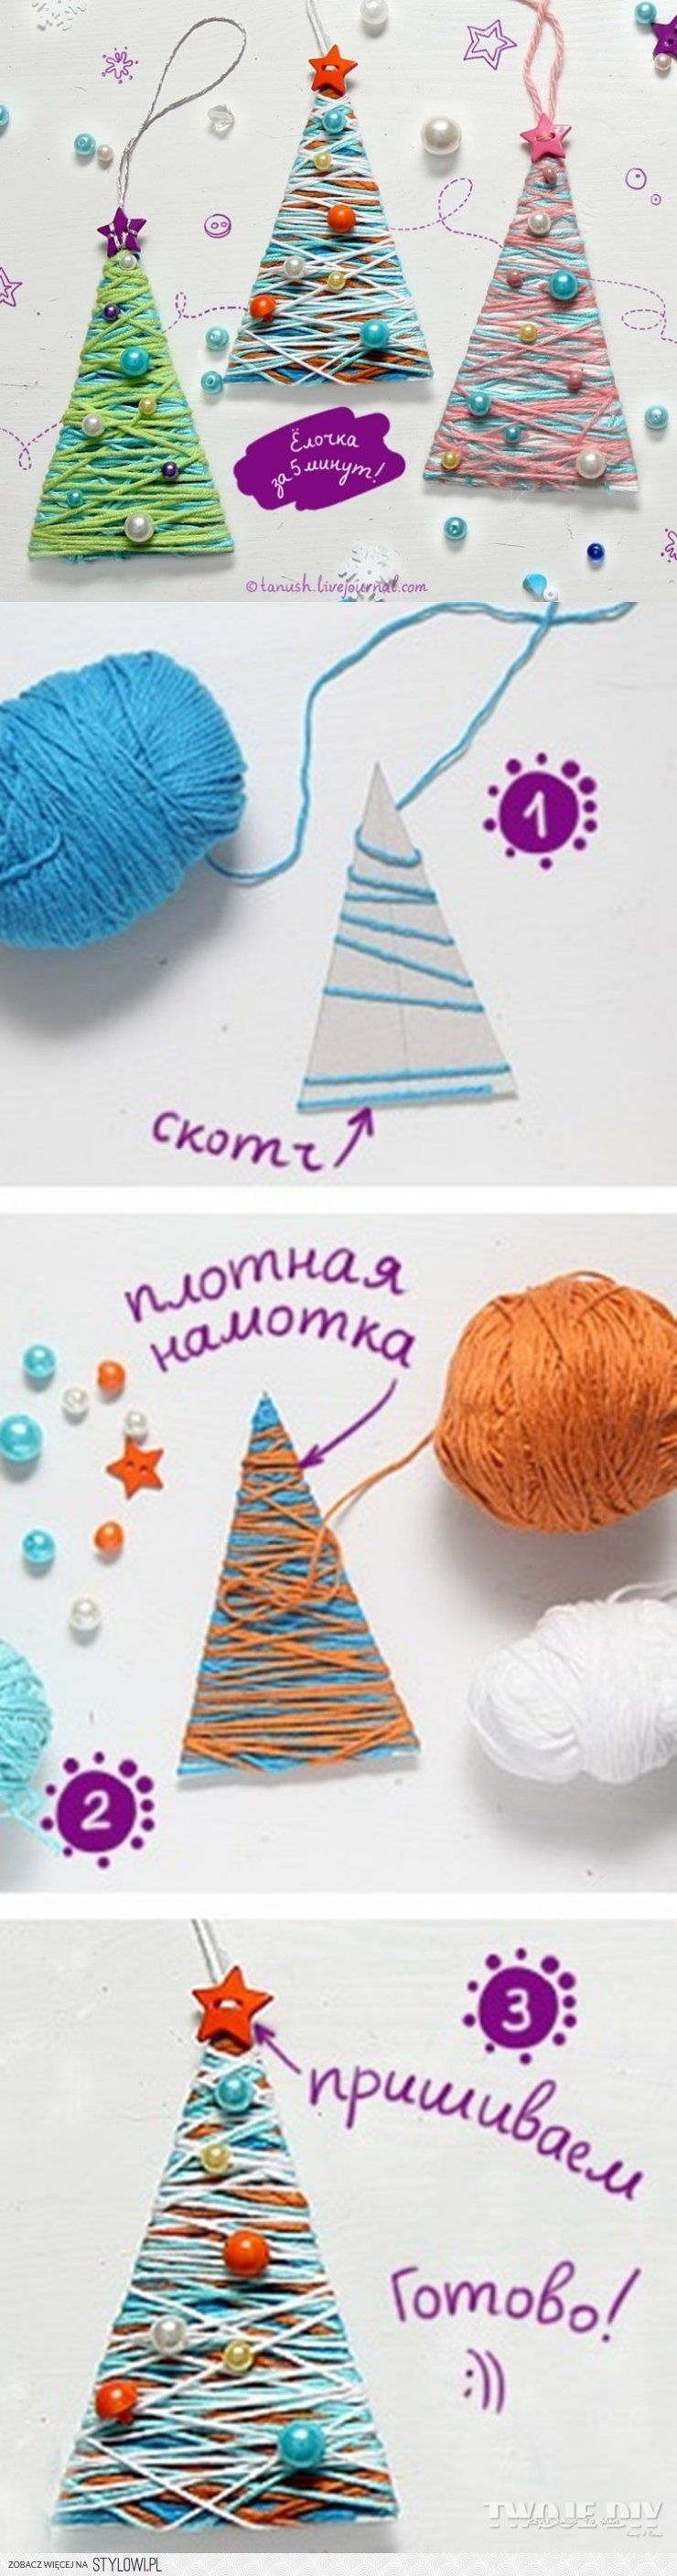 Zawieszki choineczki (Coloured Christmas Trees) - Simple and beautiful DIY decorations using yarn/wool.